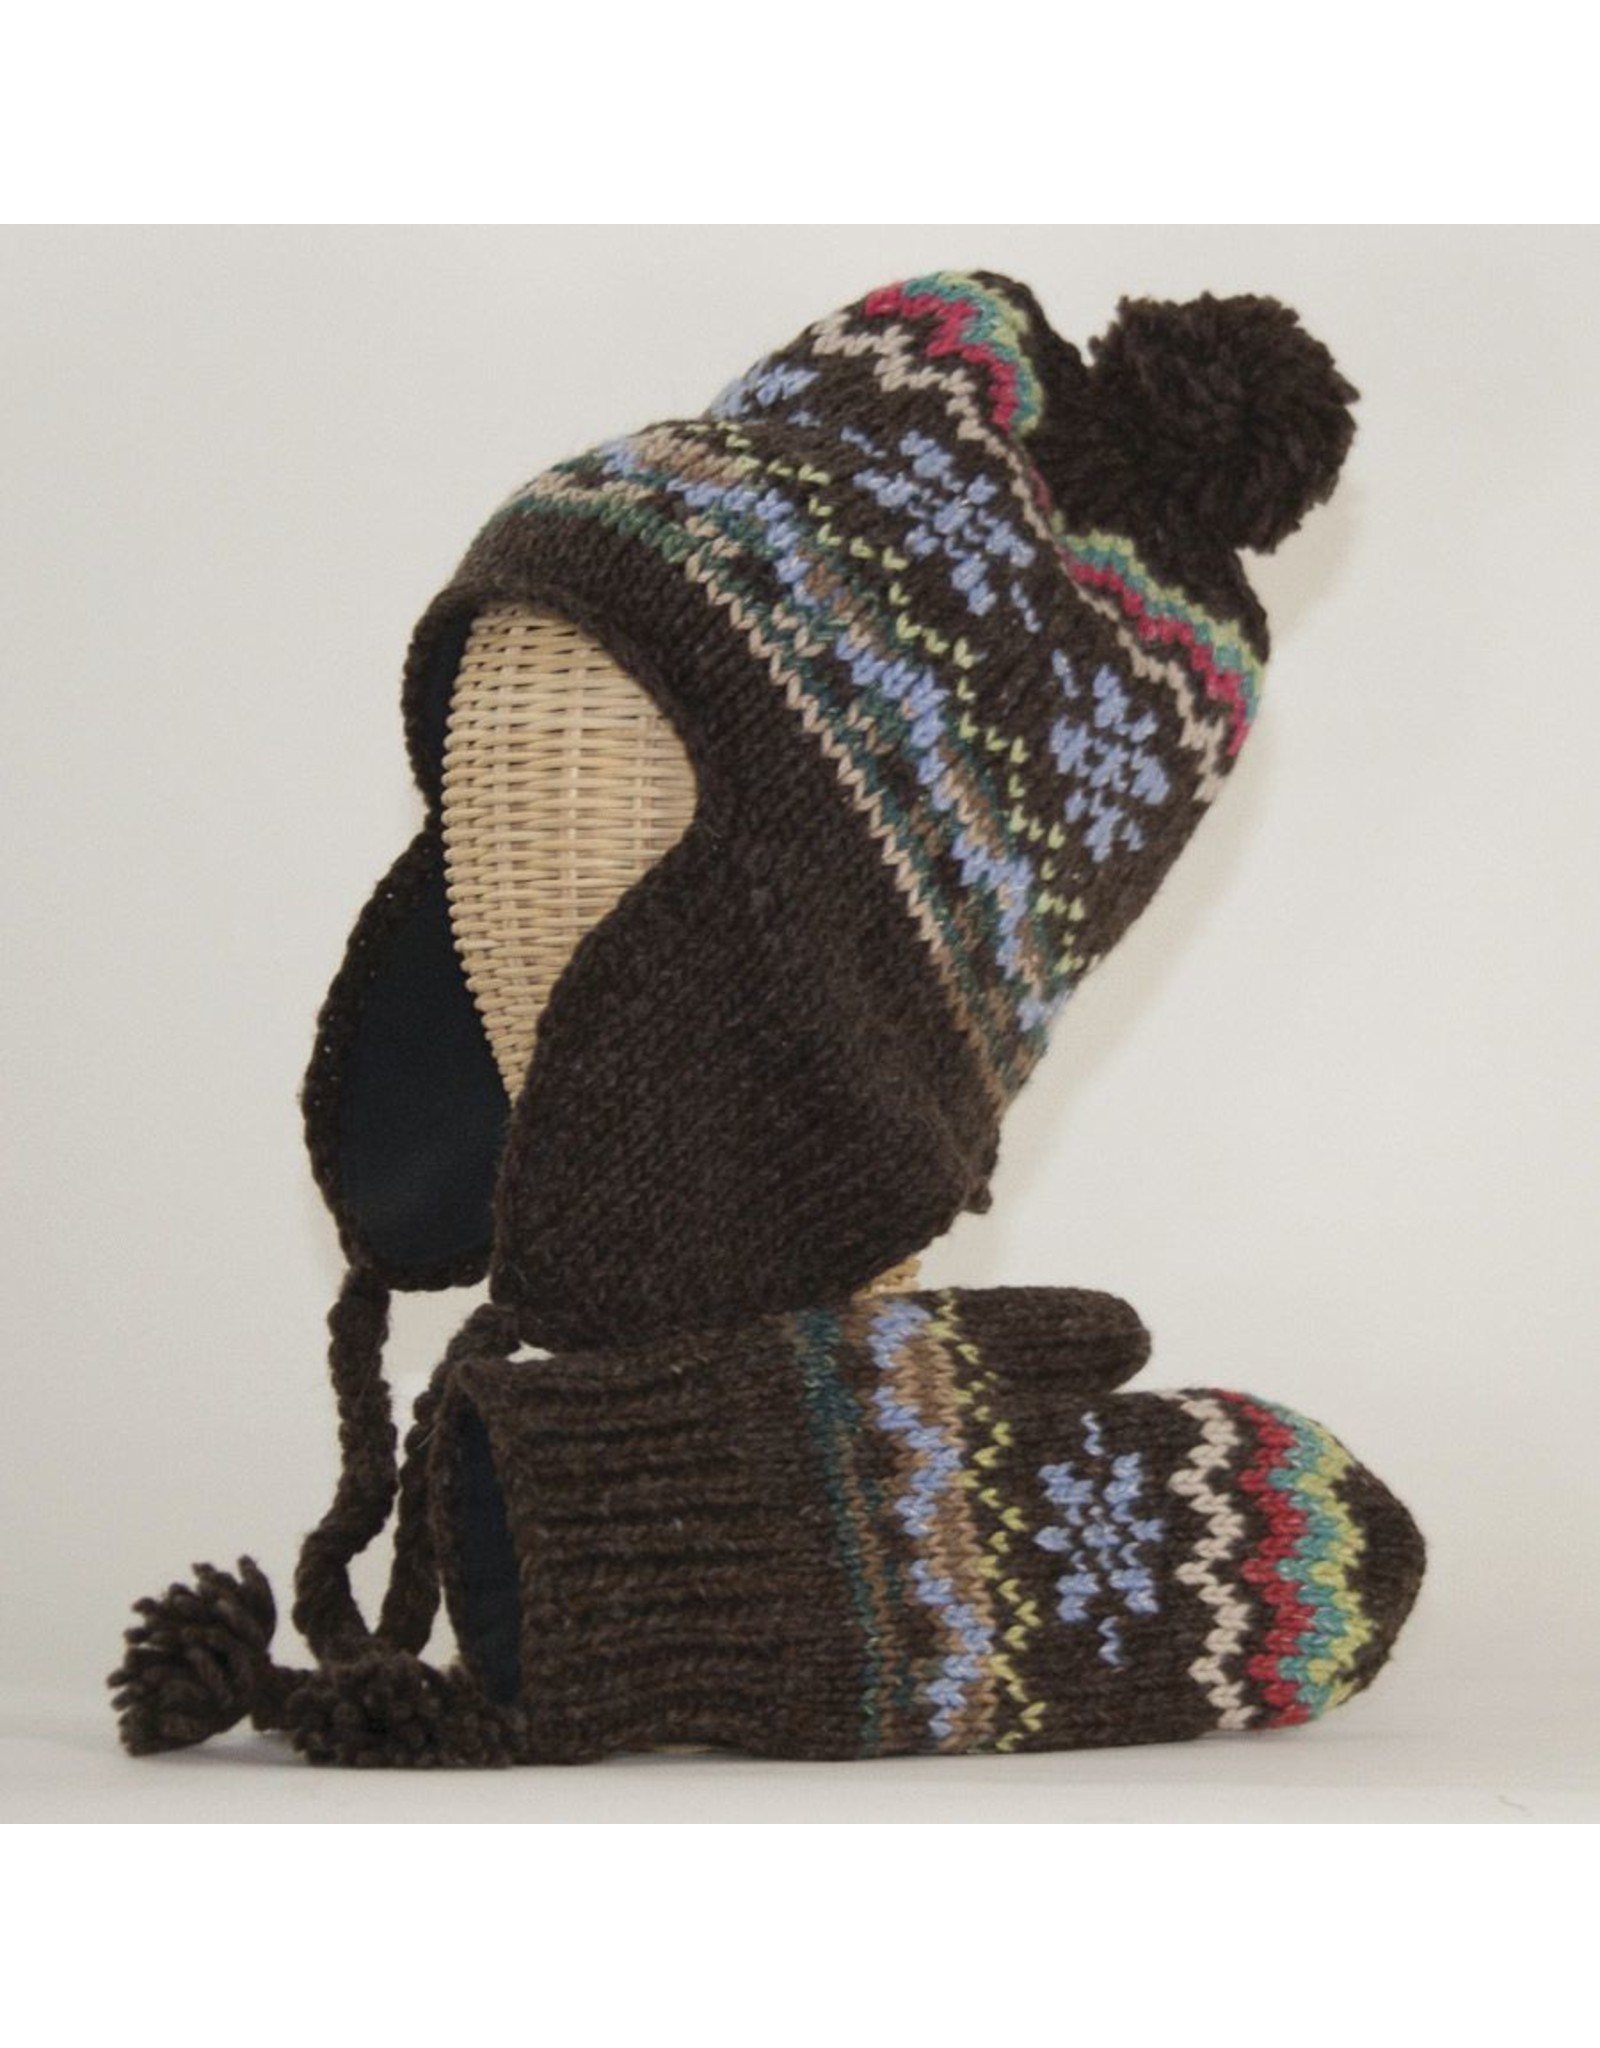 The Sweater Venture Flap Cap & Mitten Set